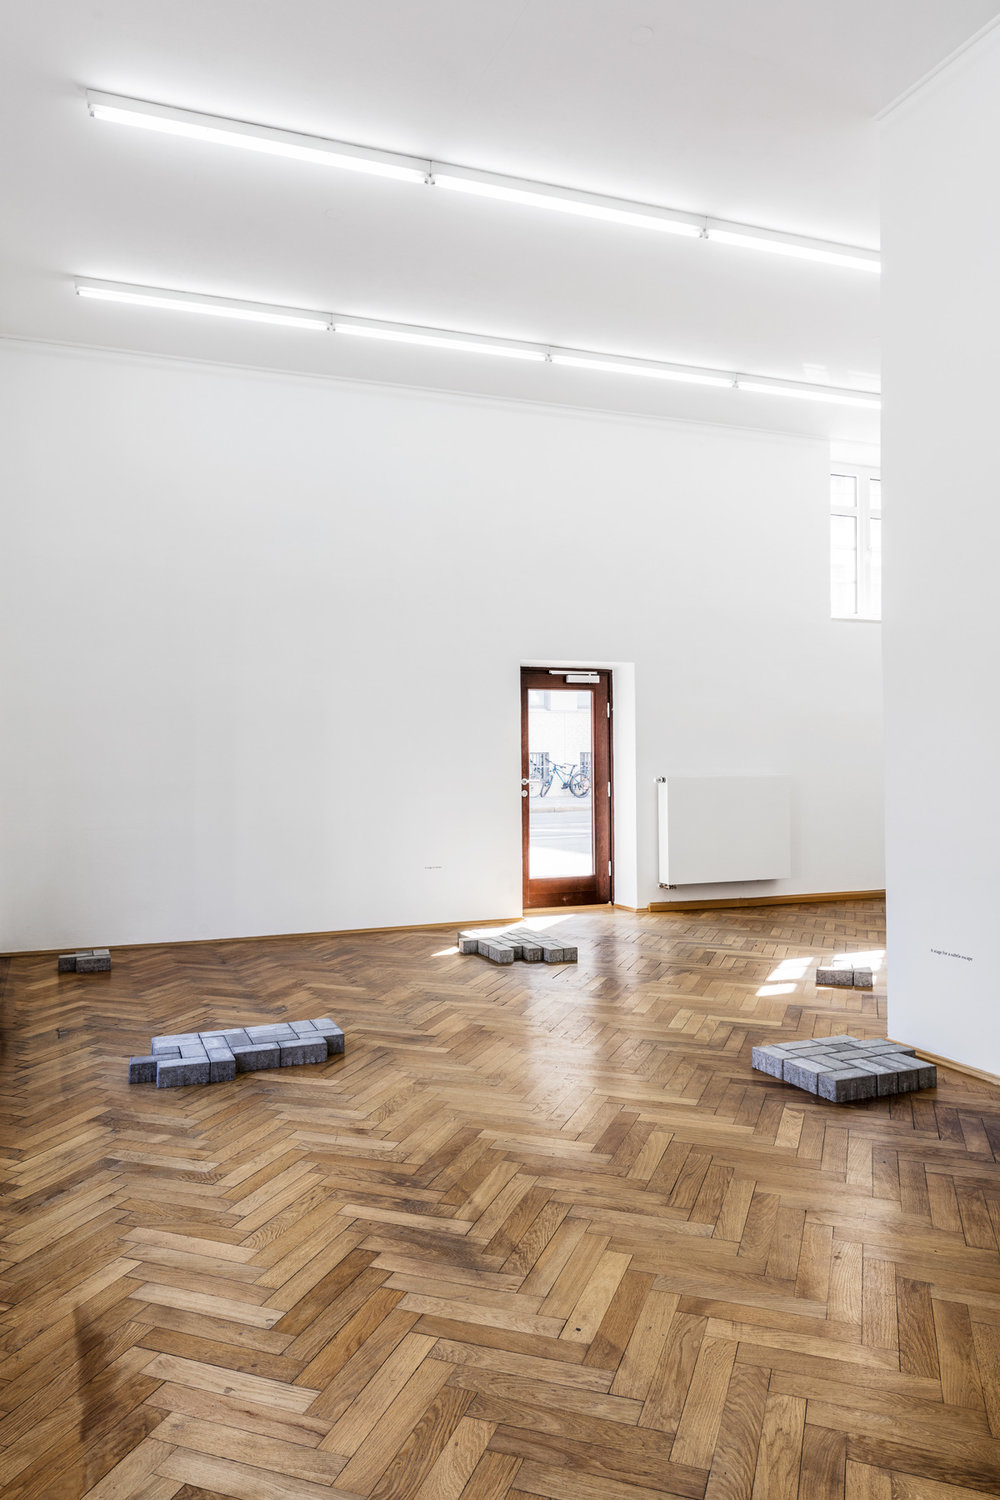 Thomas Geiger, Private Monuments, installation view